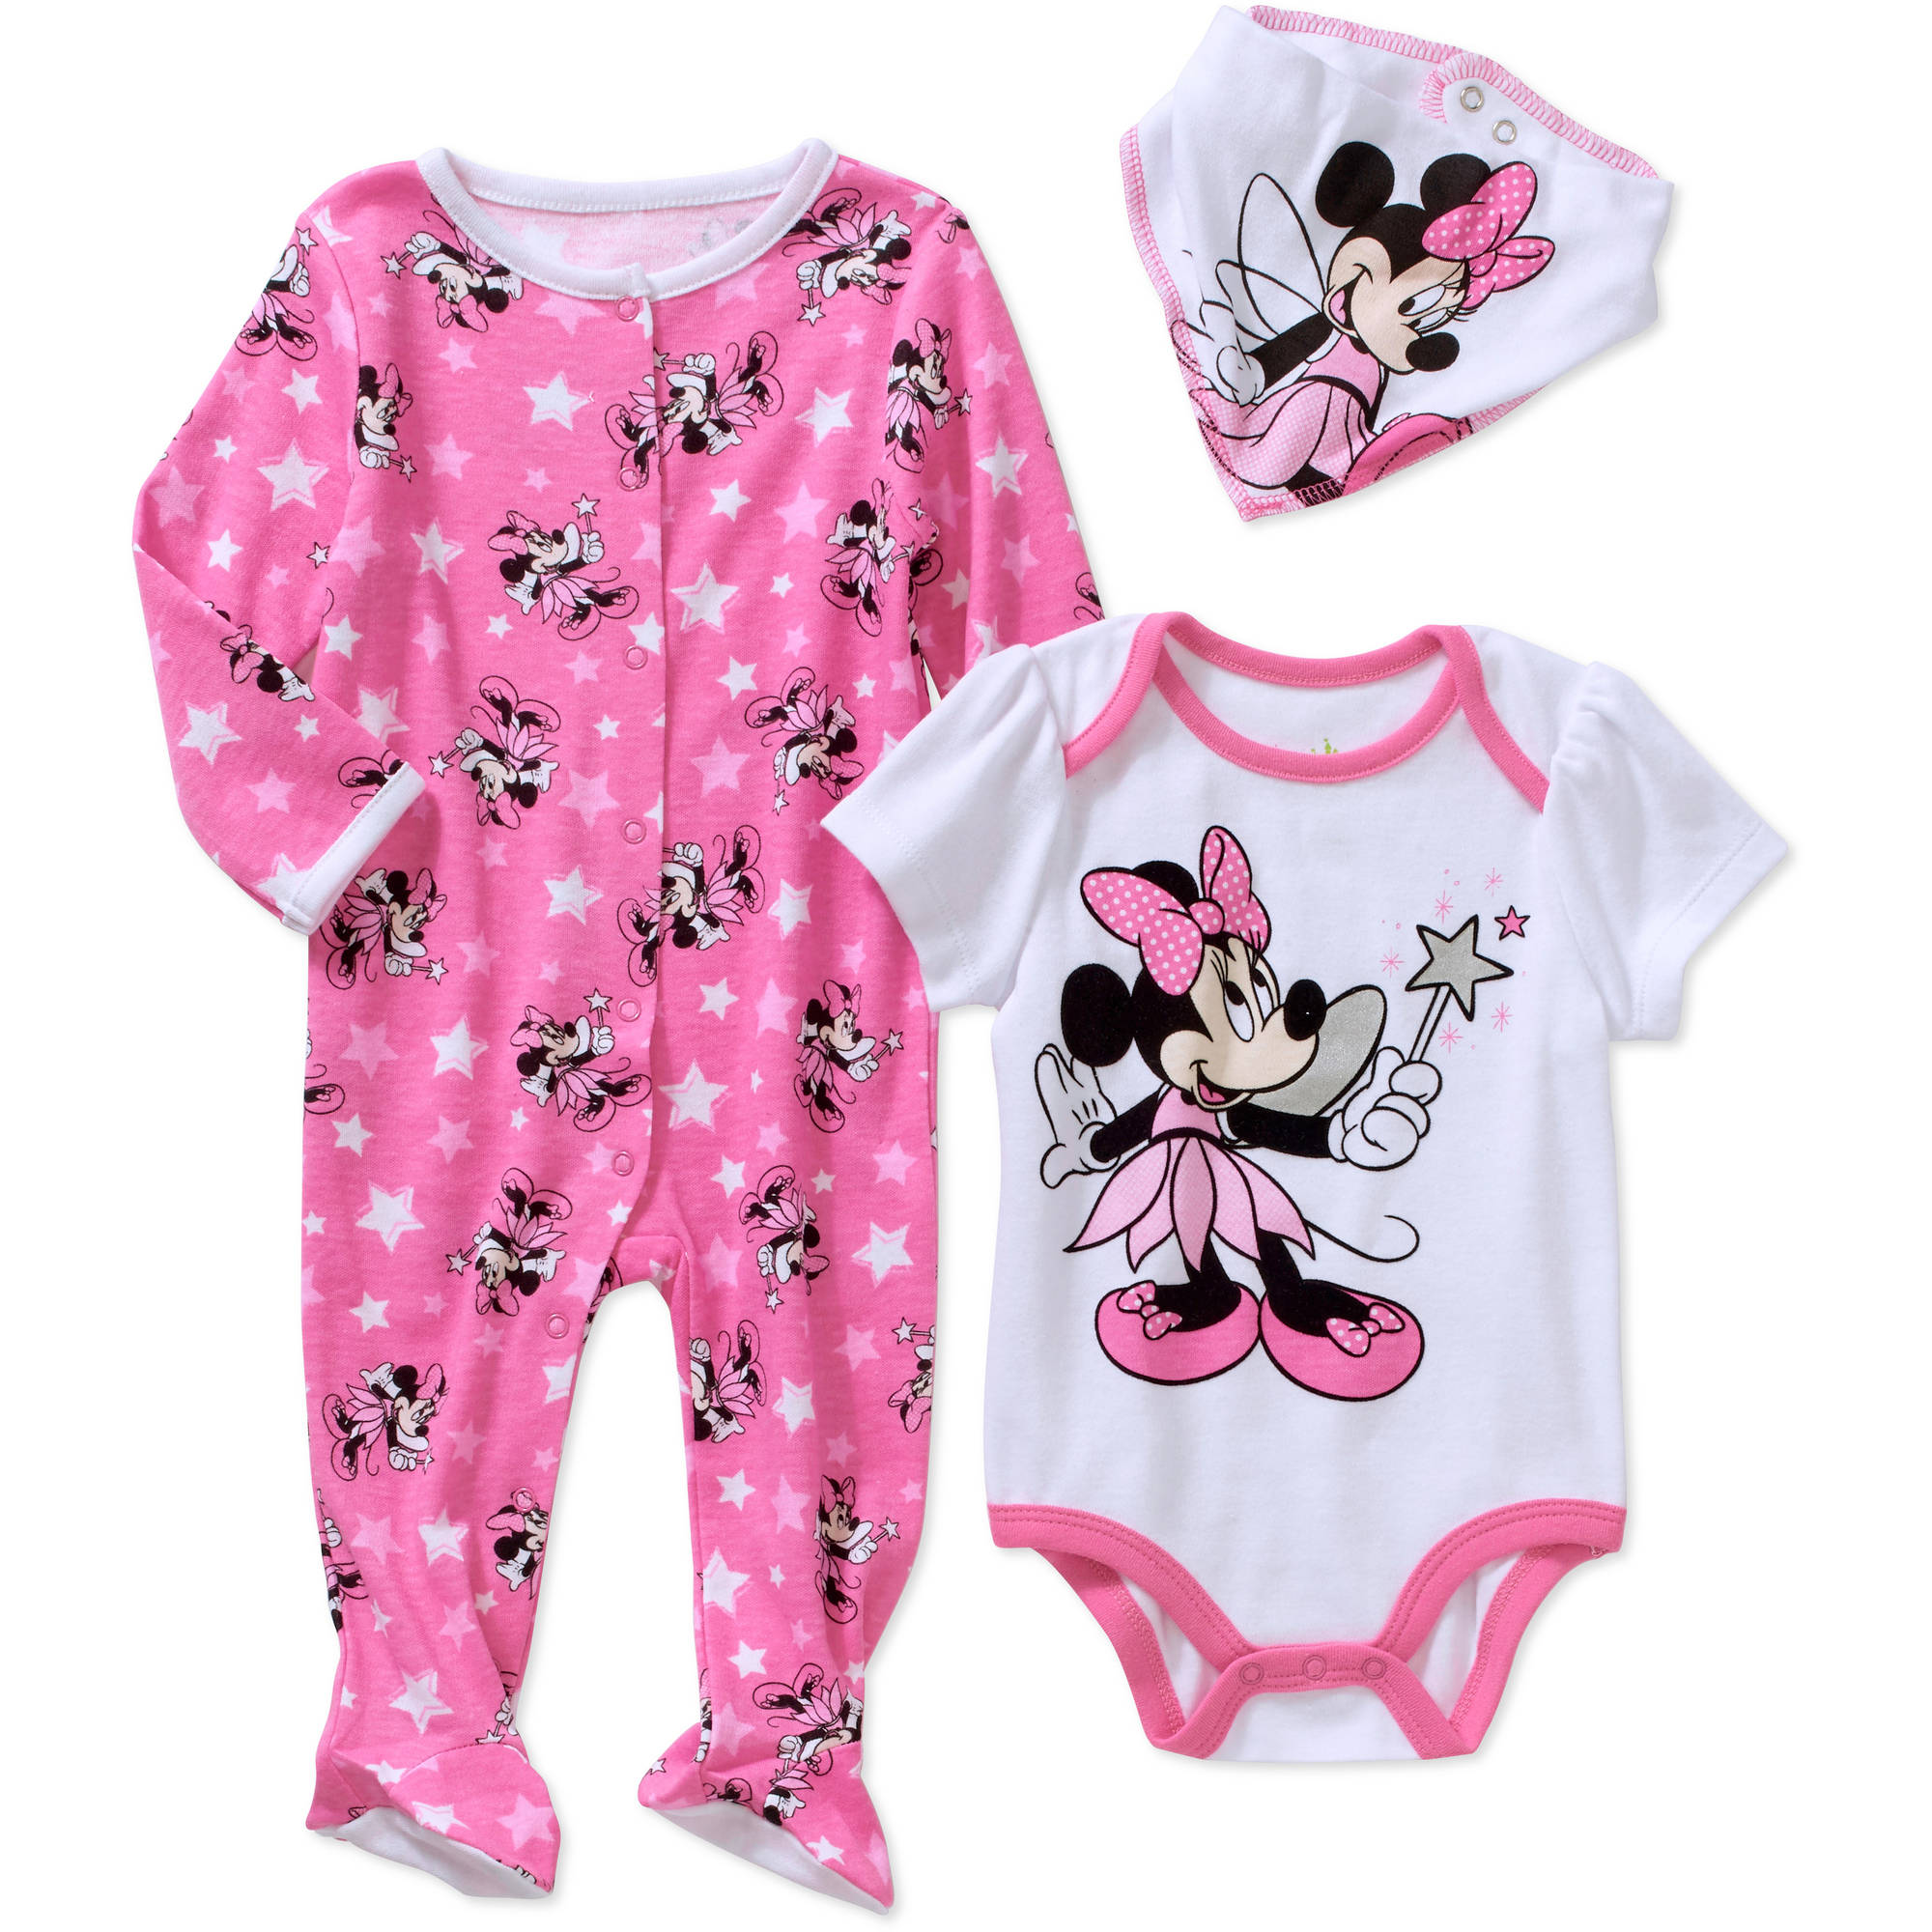 Minnie Mouse Newborn Baby Girl Footed Sleeper, Bodysuit, and Bib, 3-Piece Layette Set